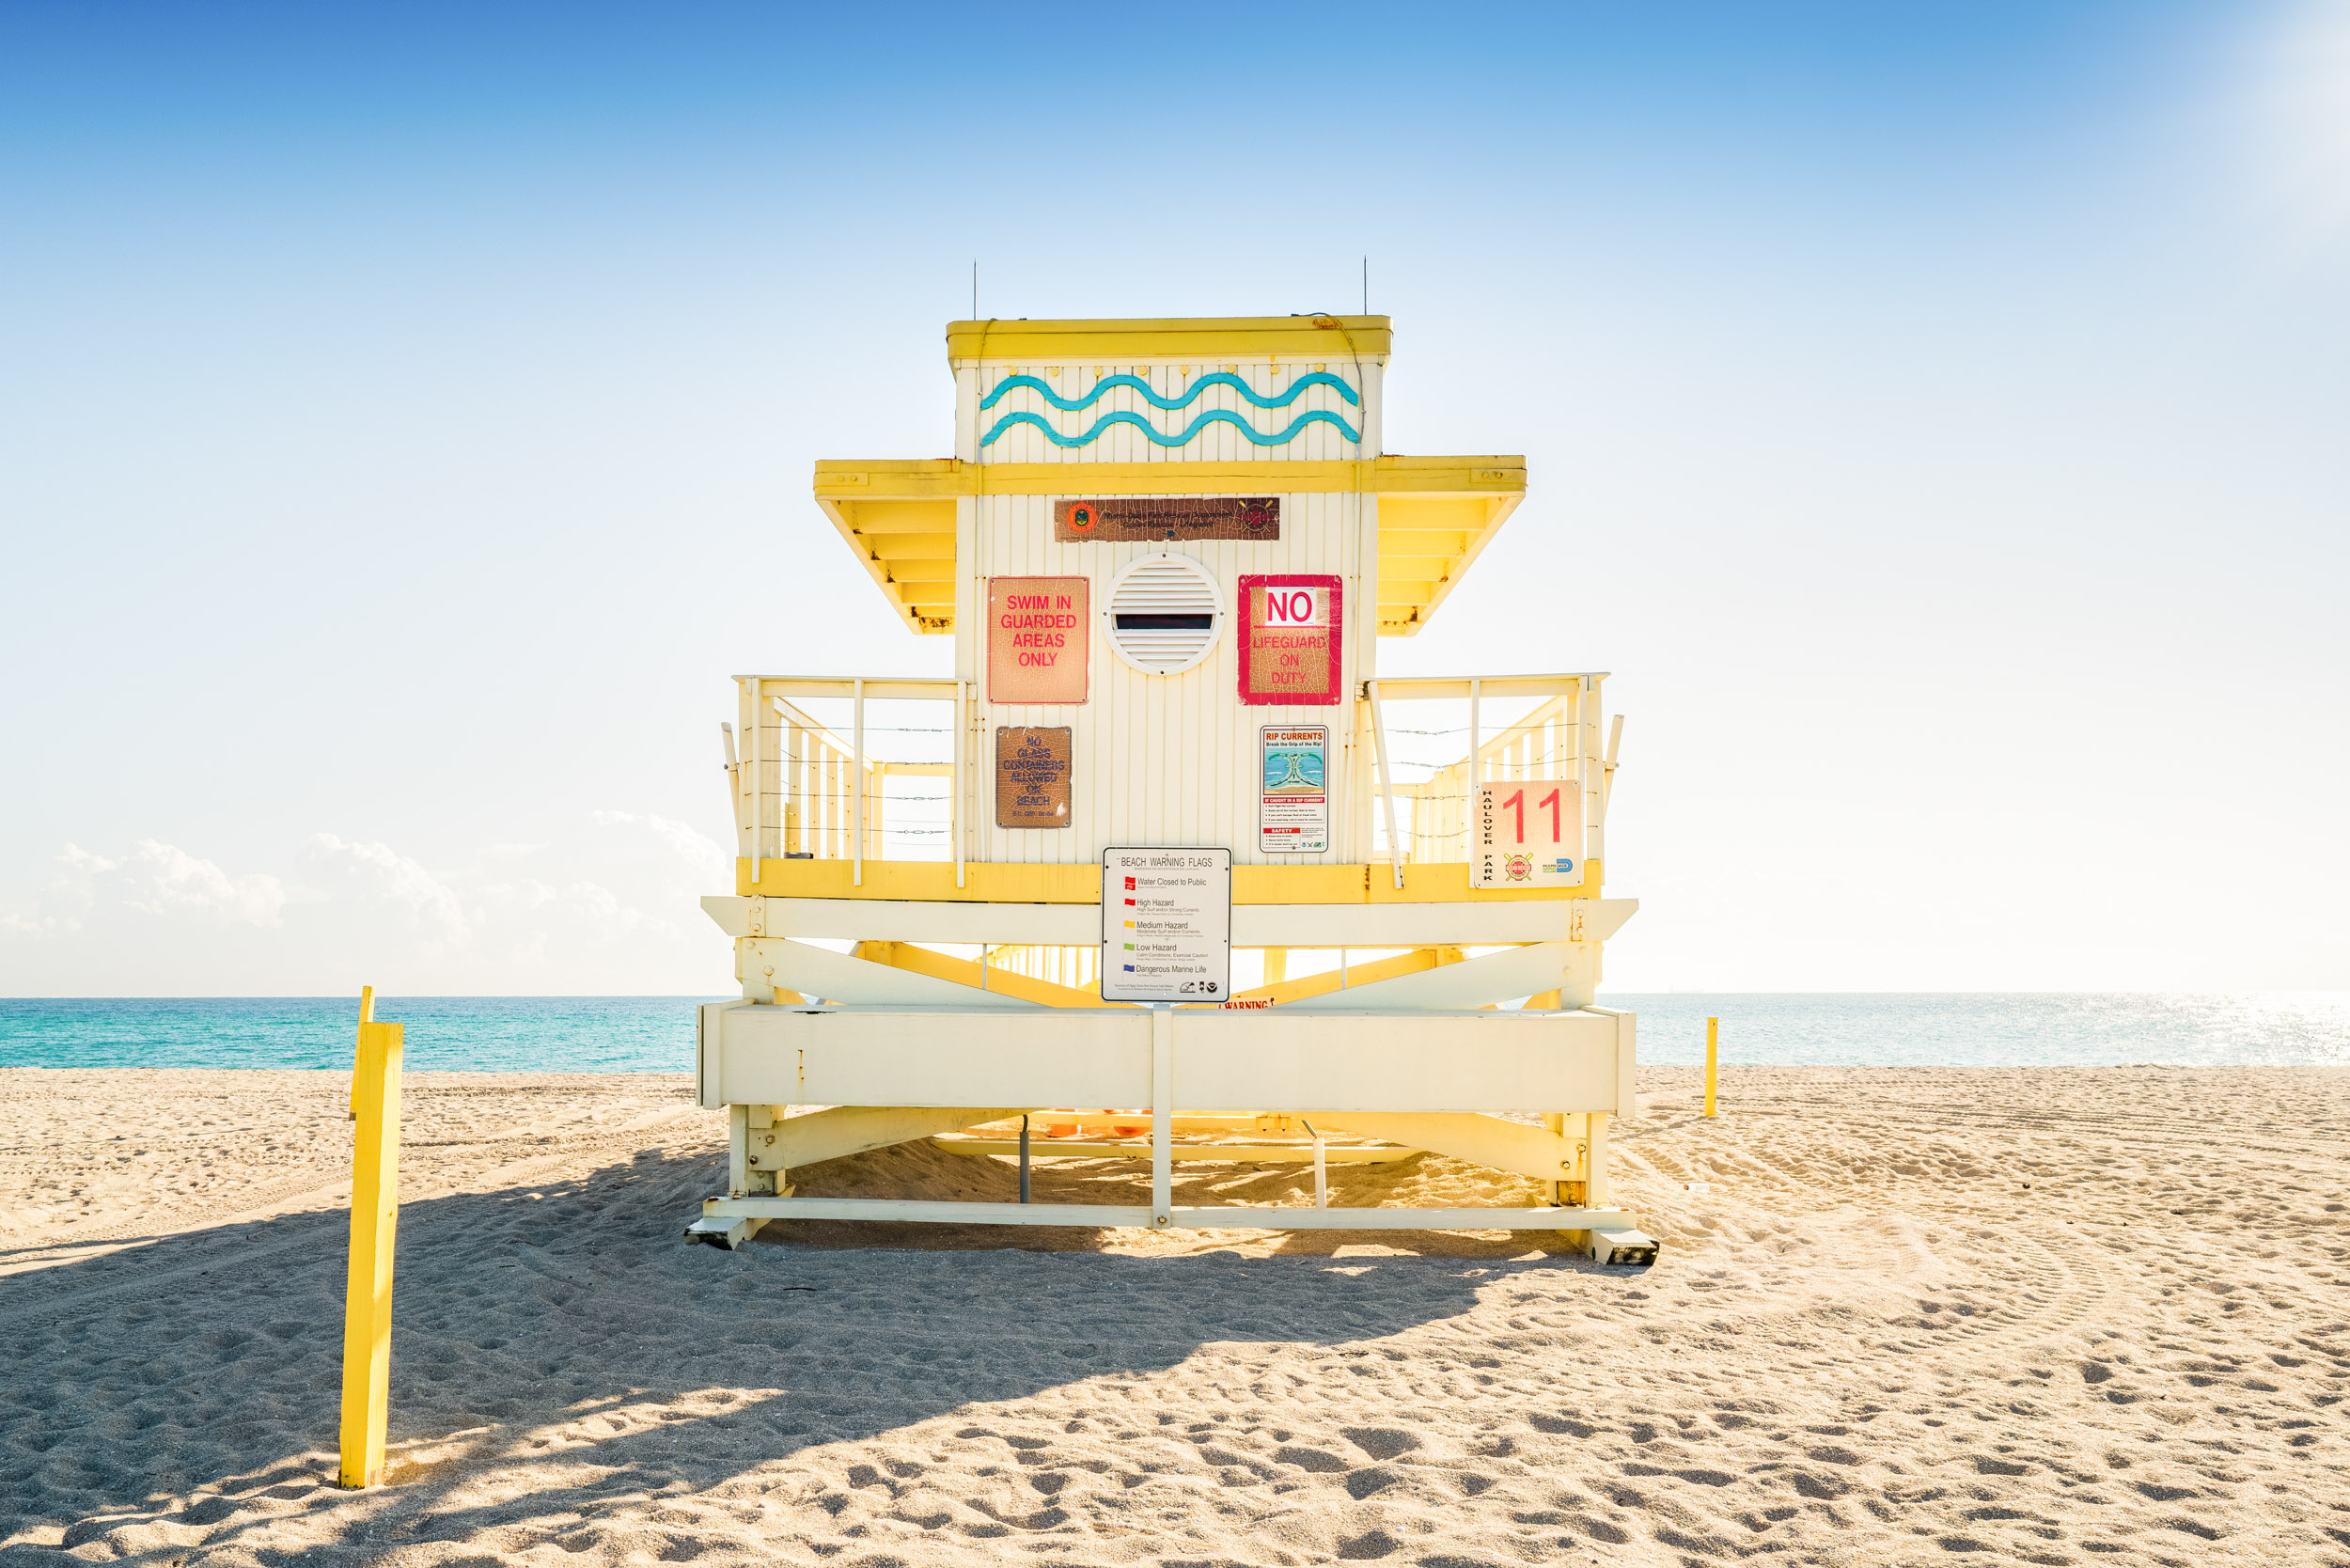 Mendelson Fine Art Photography — LIFEGUARD STANDS OF MIAMI BEACH